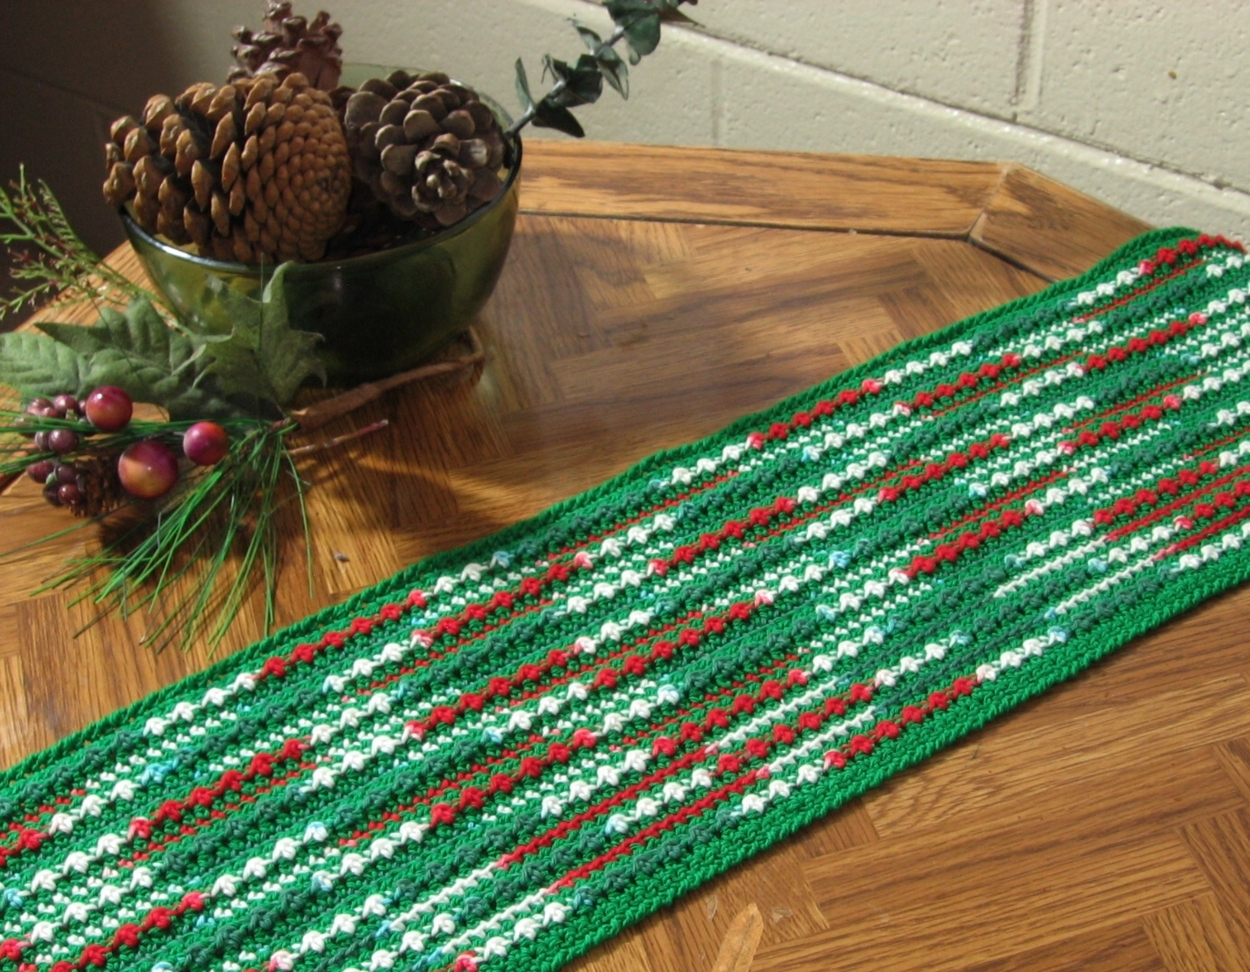 Bee_stitch_red_green_white_table_runner_w-prop_rect_img_3651_1250w_96